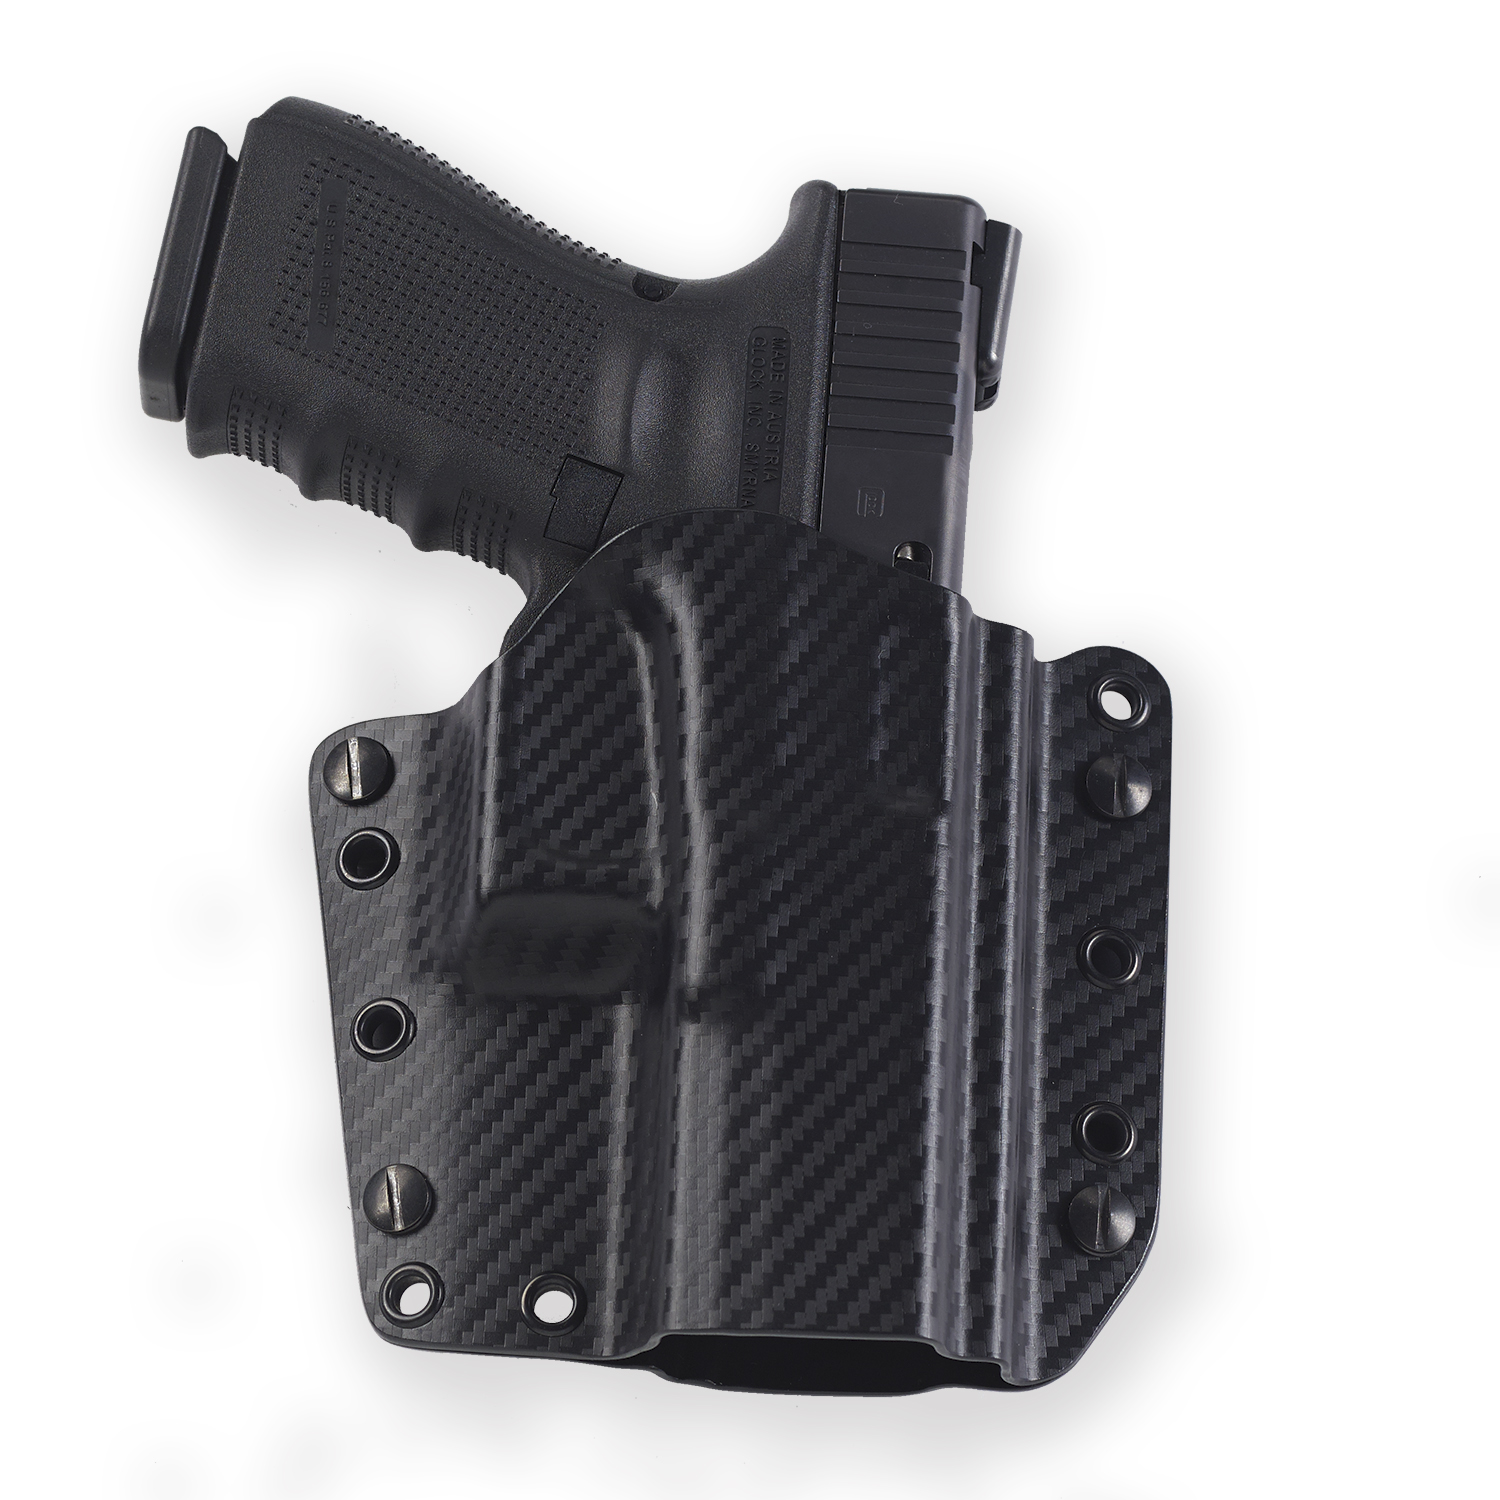 Corvus Belt (OWB) / IWB Kydex 'Carbon Fiber Finish' Holster by Galco